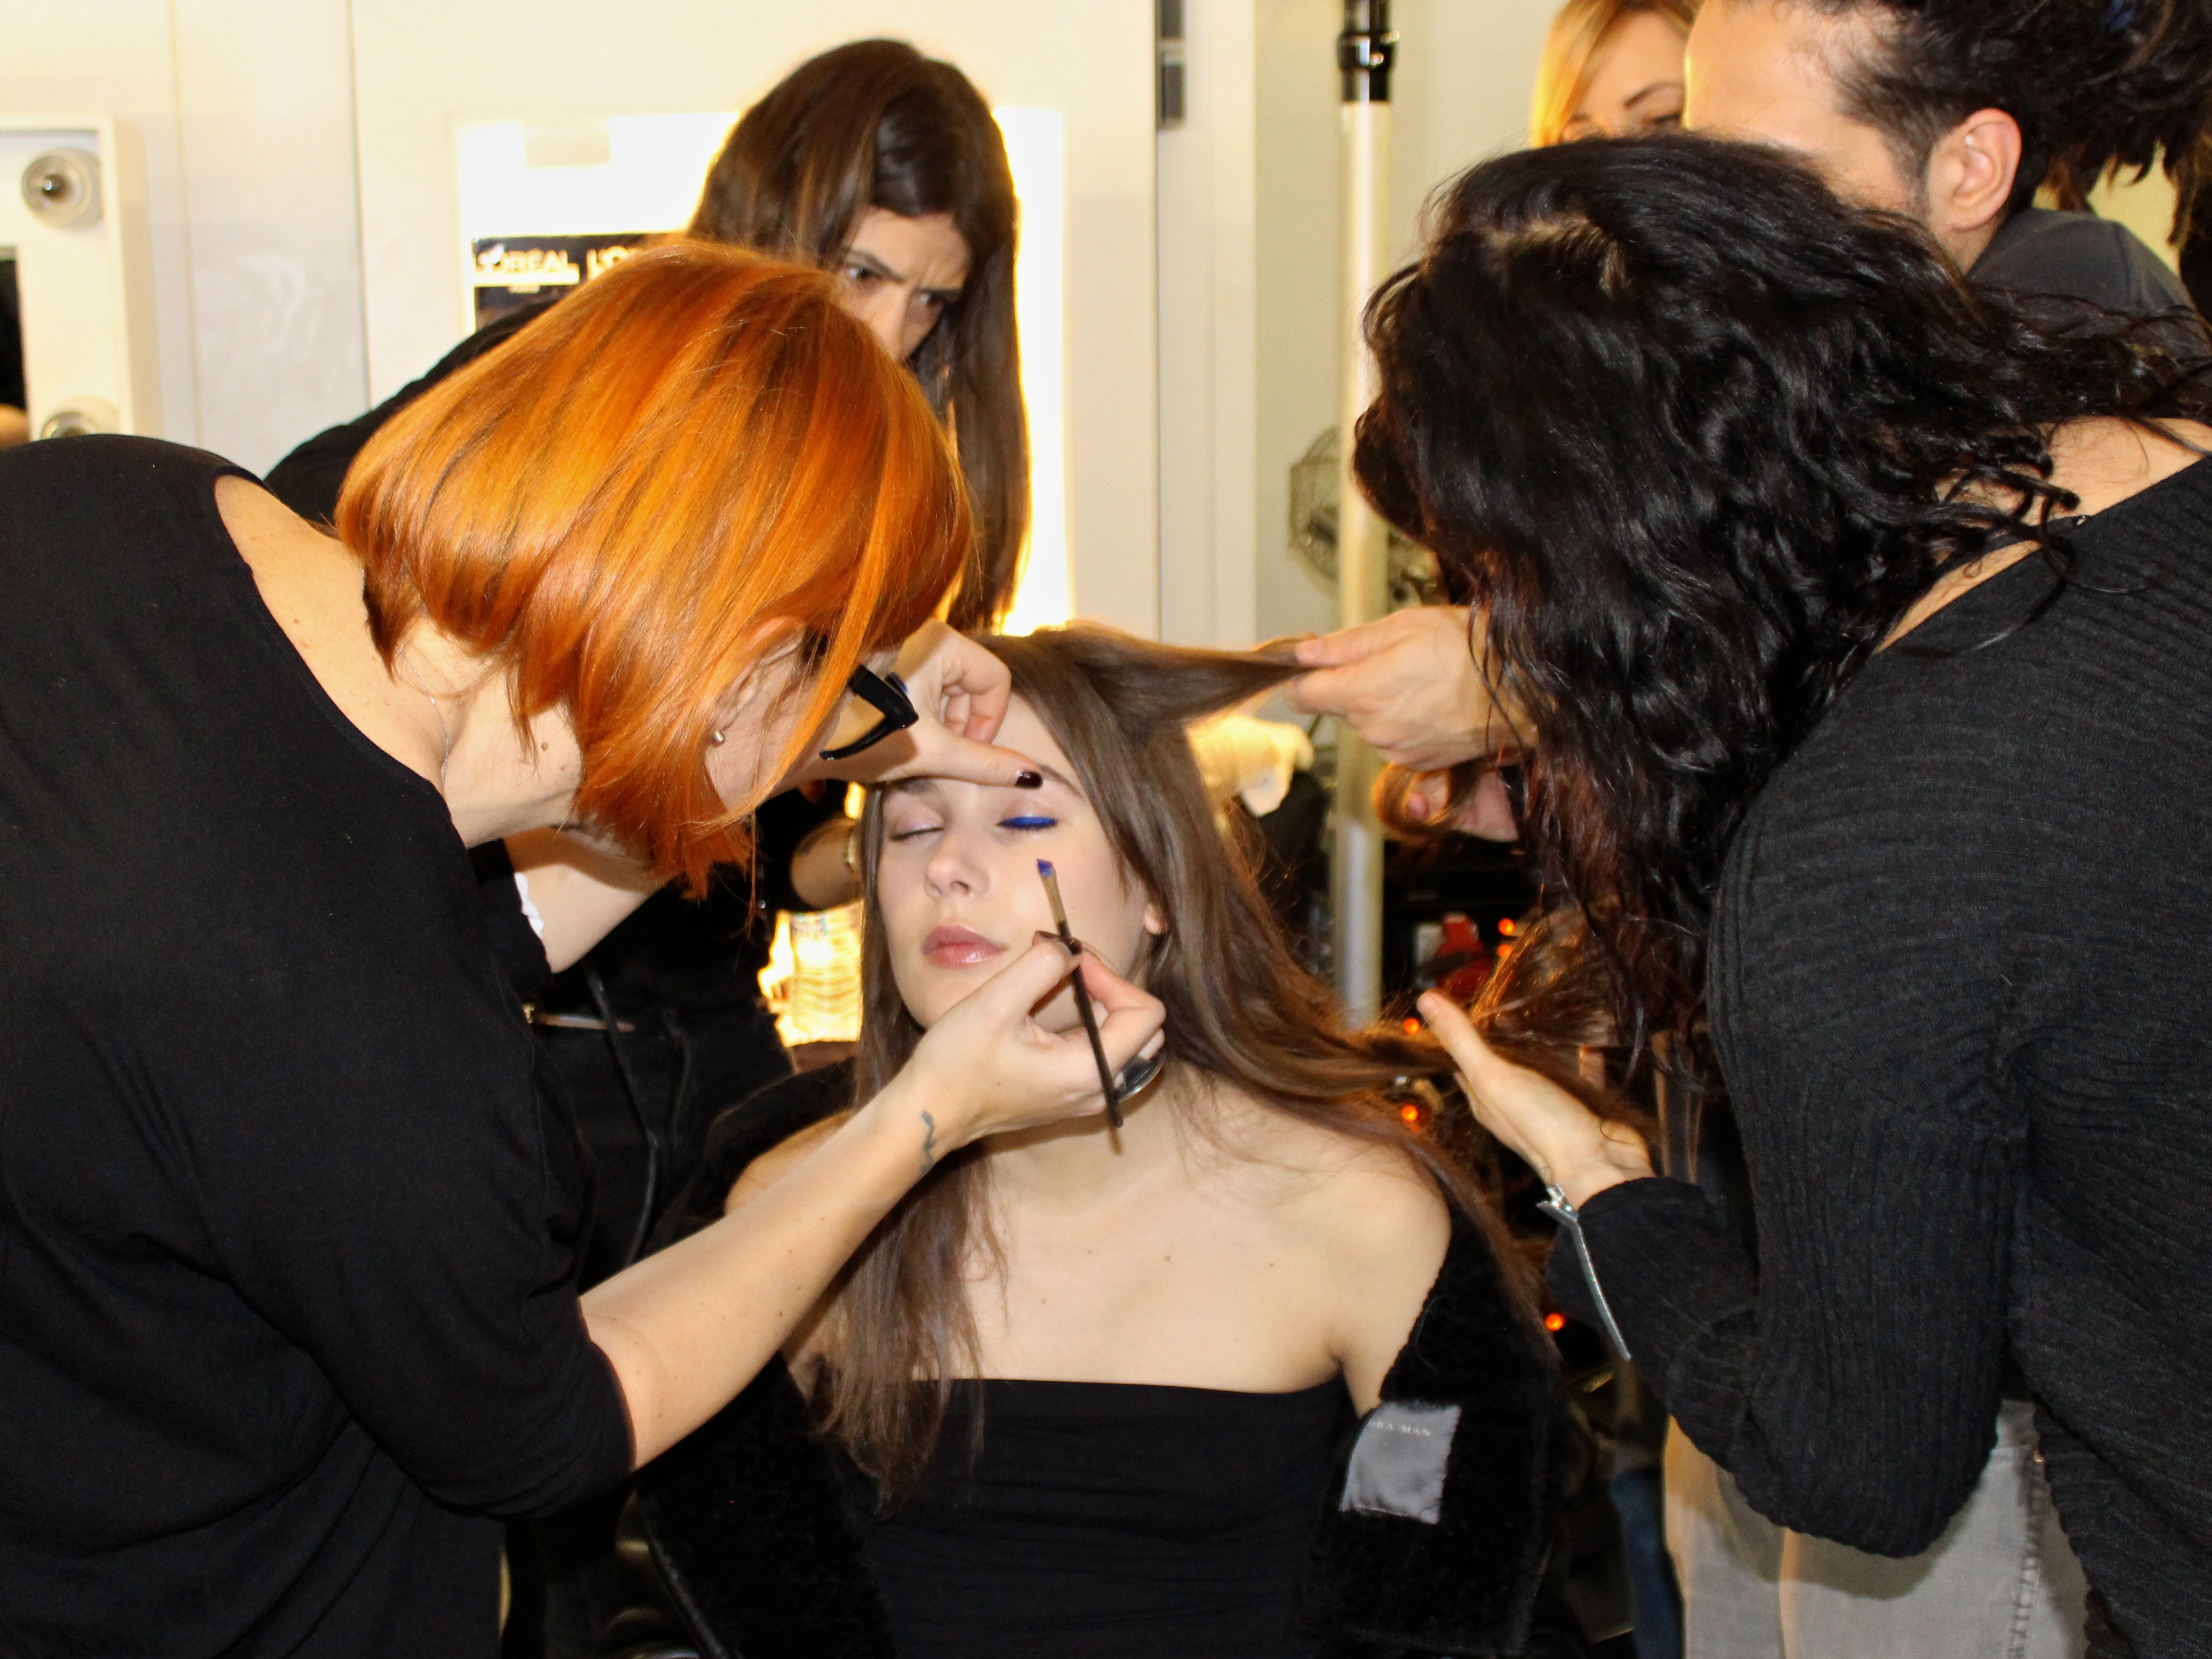 LFW Backstage at Anya Hindmarch